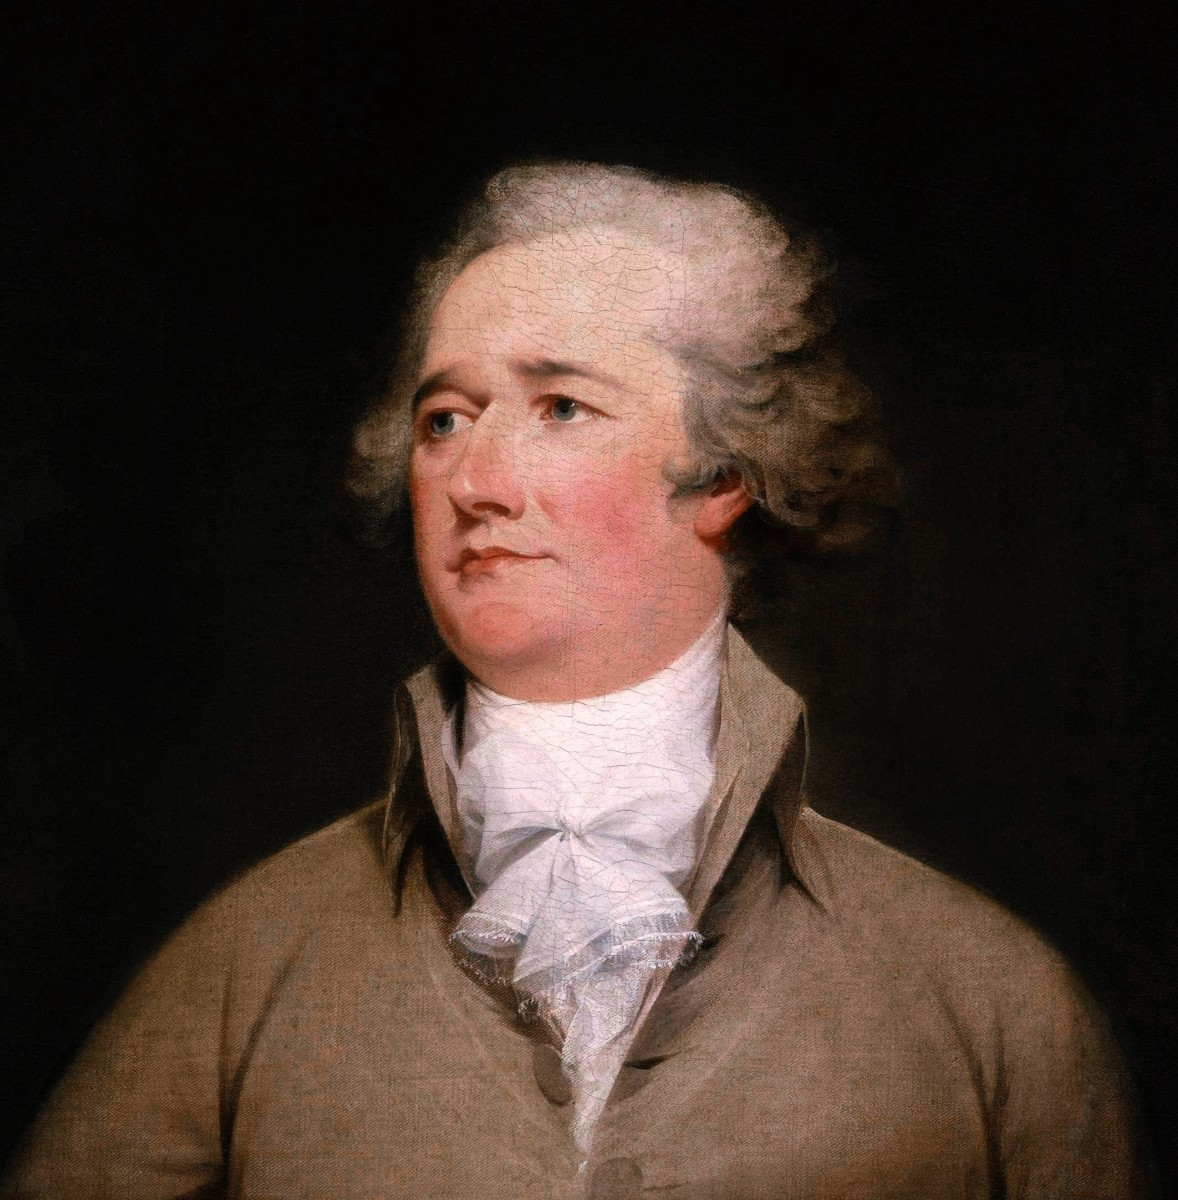 Alexander Hamilton - American Statesman and Founding Father